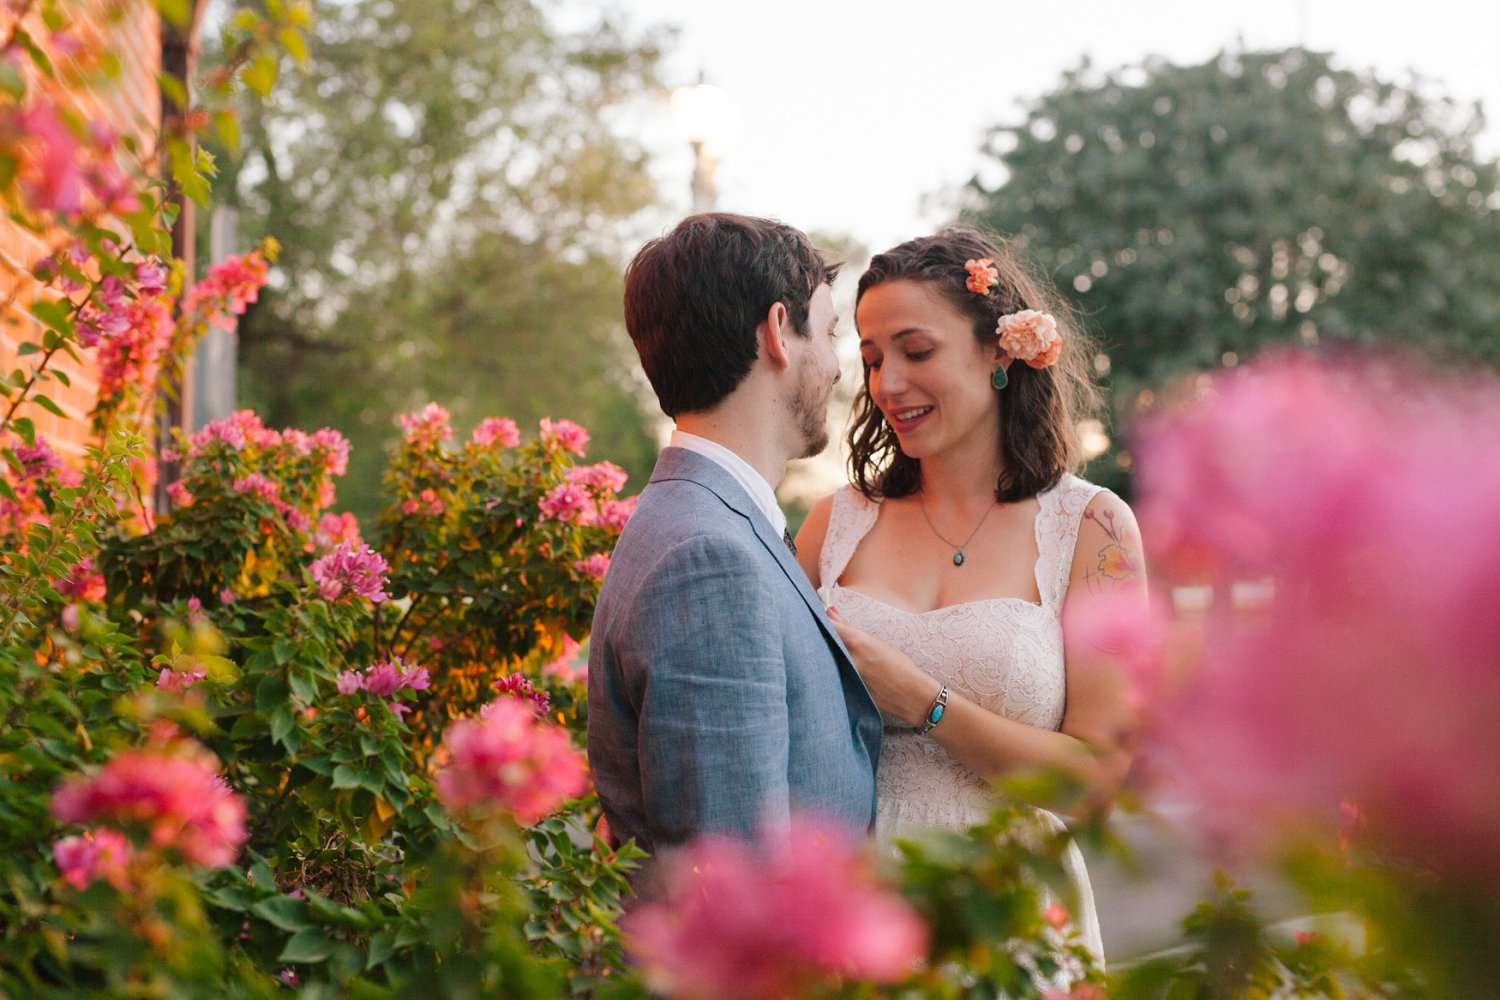 emotional natural intimate wedding photos Arizona wedding photographer